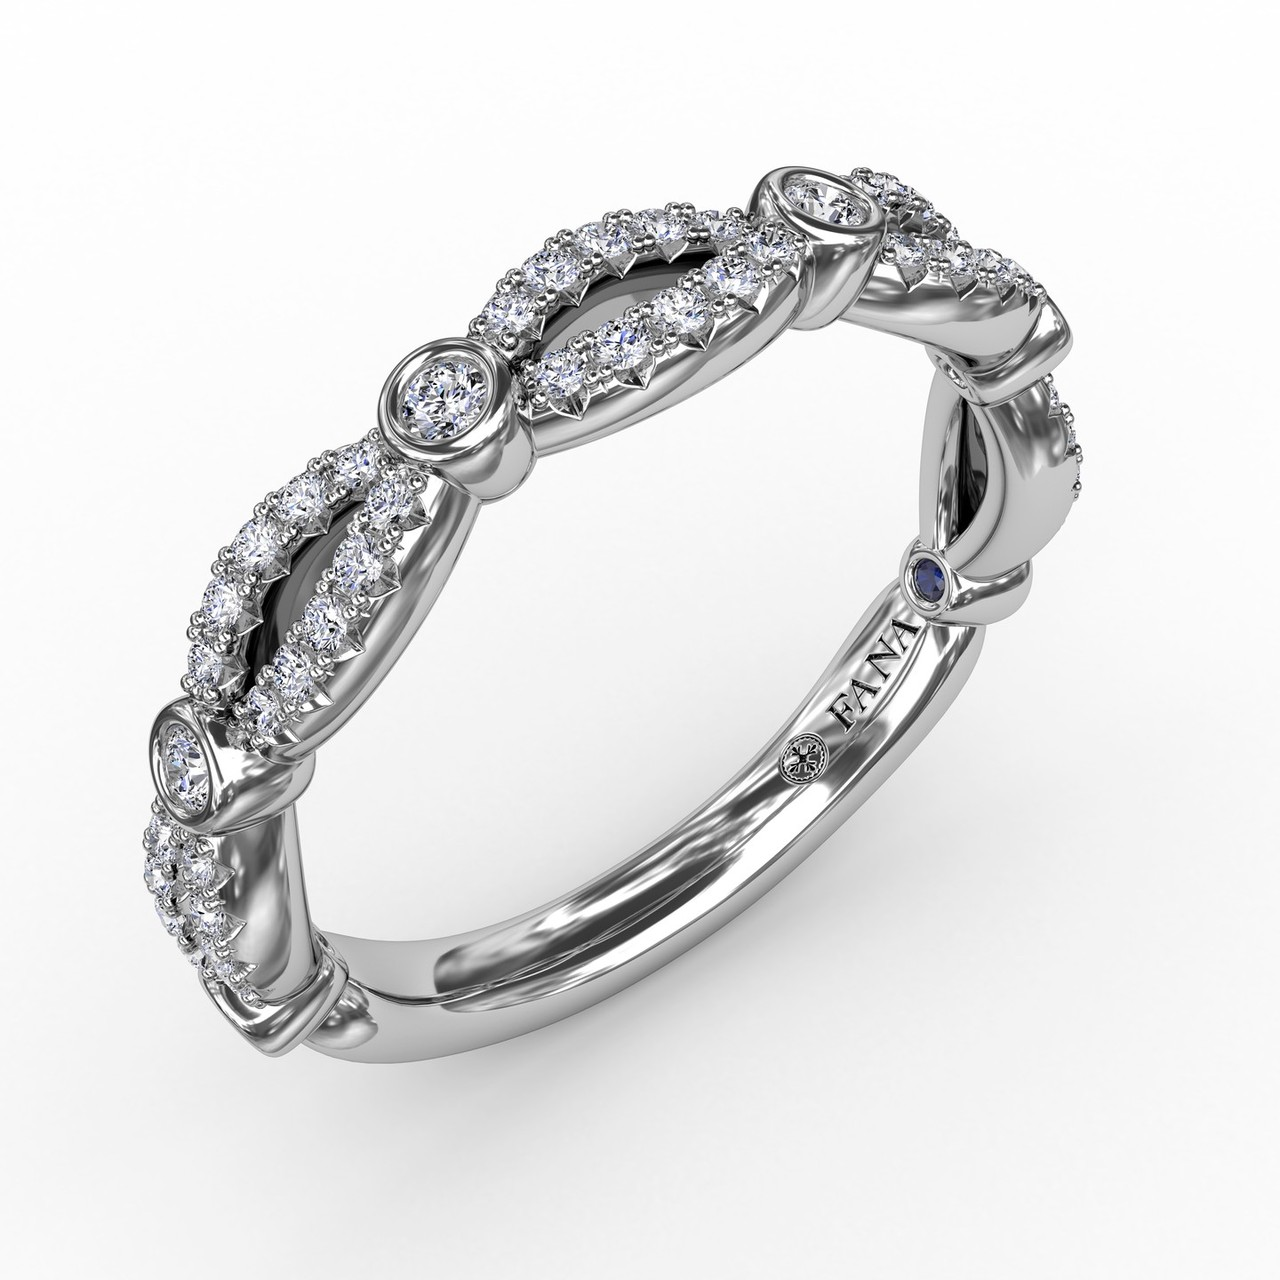 Scalloped Diamond Band with Diamond Bezel Stations - Open and airy, you will want to always keep our scalloped diamond band within reach for the multitude of ways it can be worn. Wear it alone, stacked, or to enhance your engagement ring.  This band is available in Platinum, 18KT & 14KT gold and can be customized through an Authorized Fana Retailer.